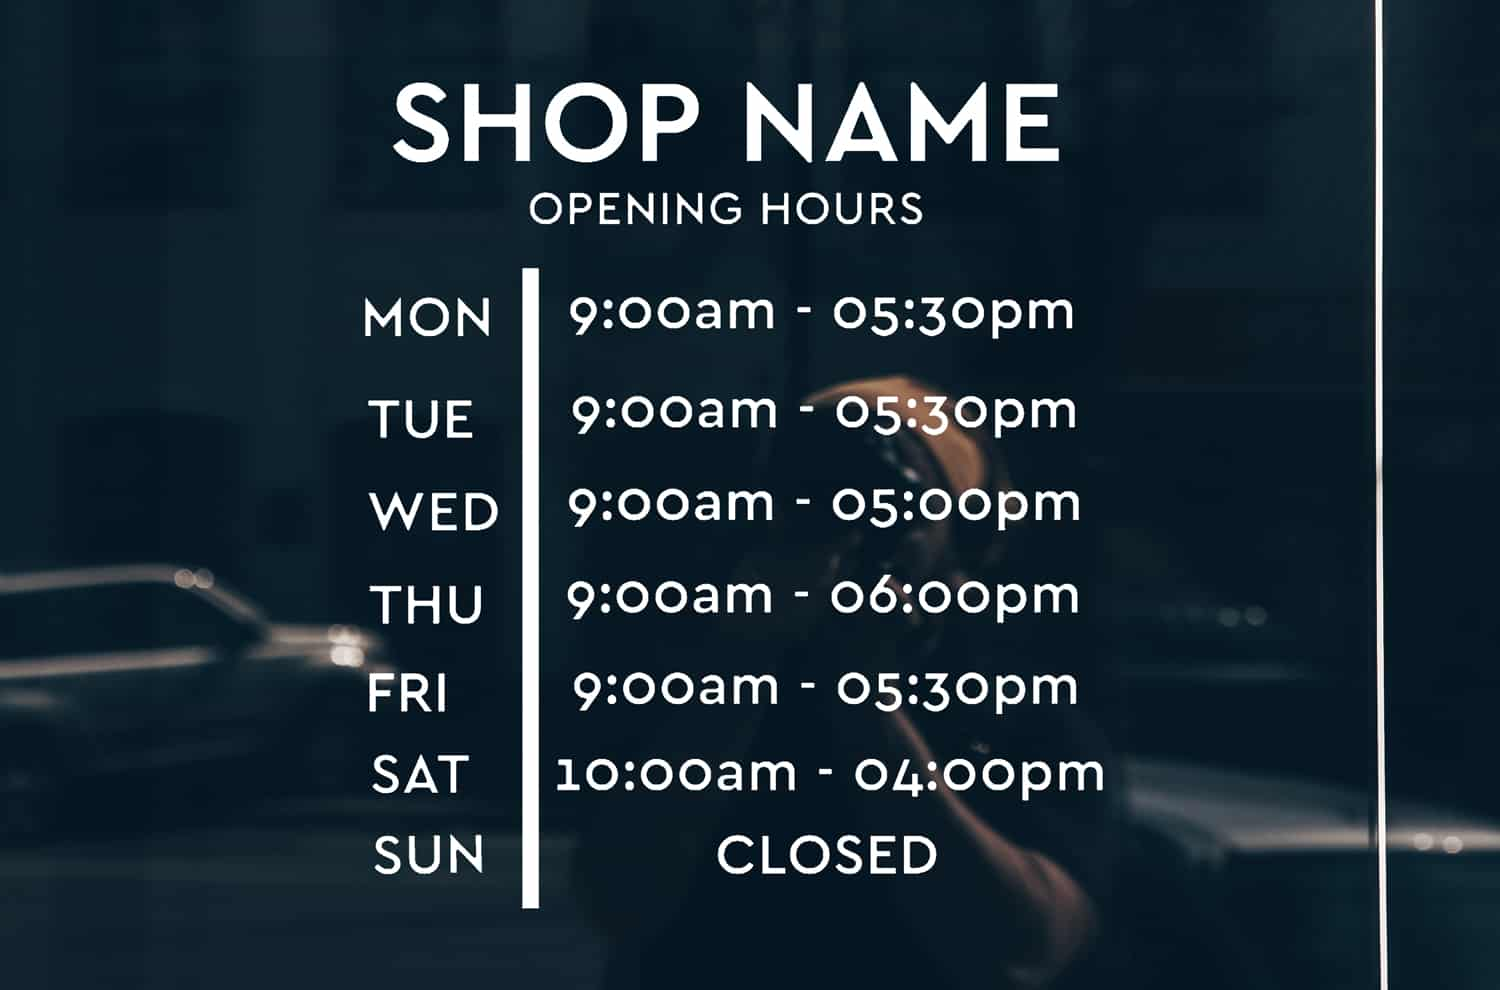 Opening hours signs